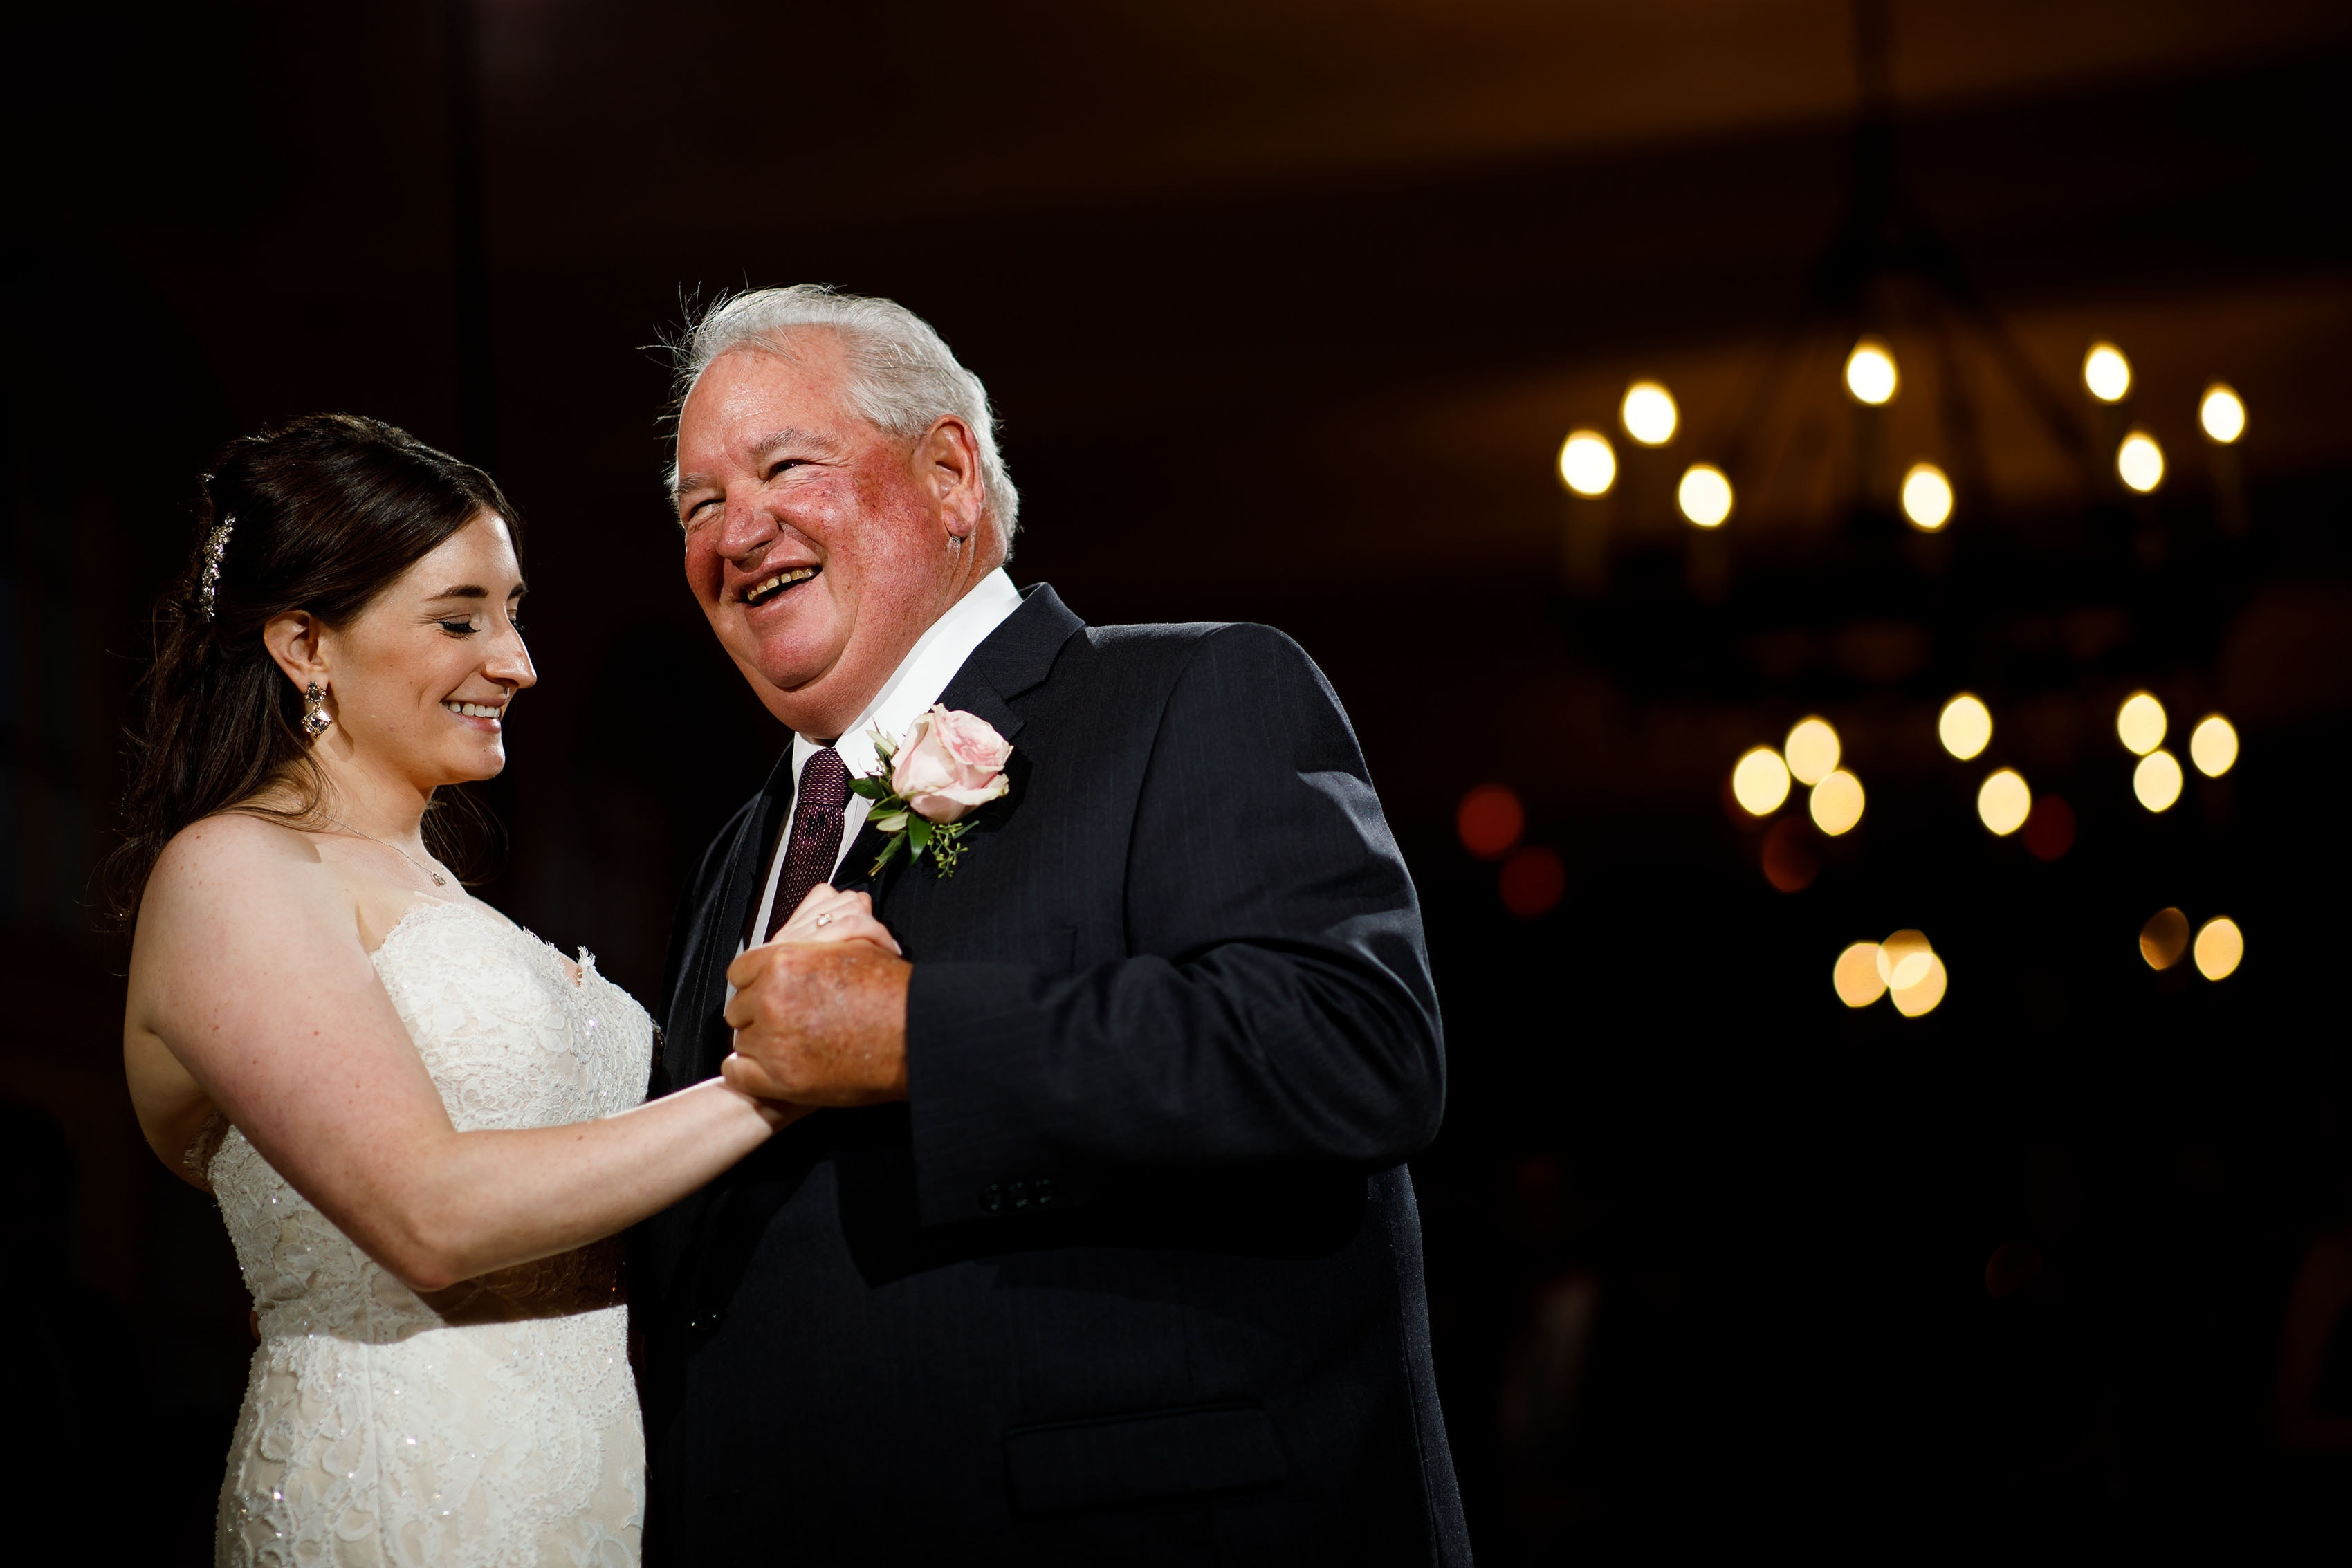 The bride dances with her father at Ravisloe